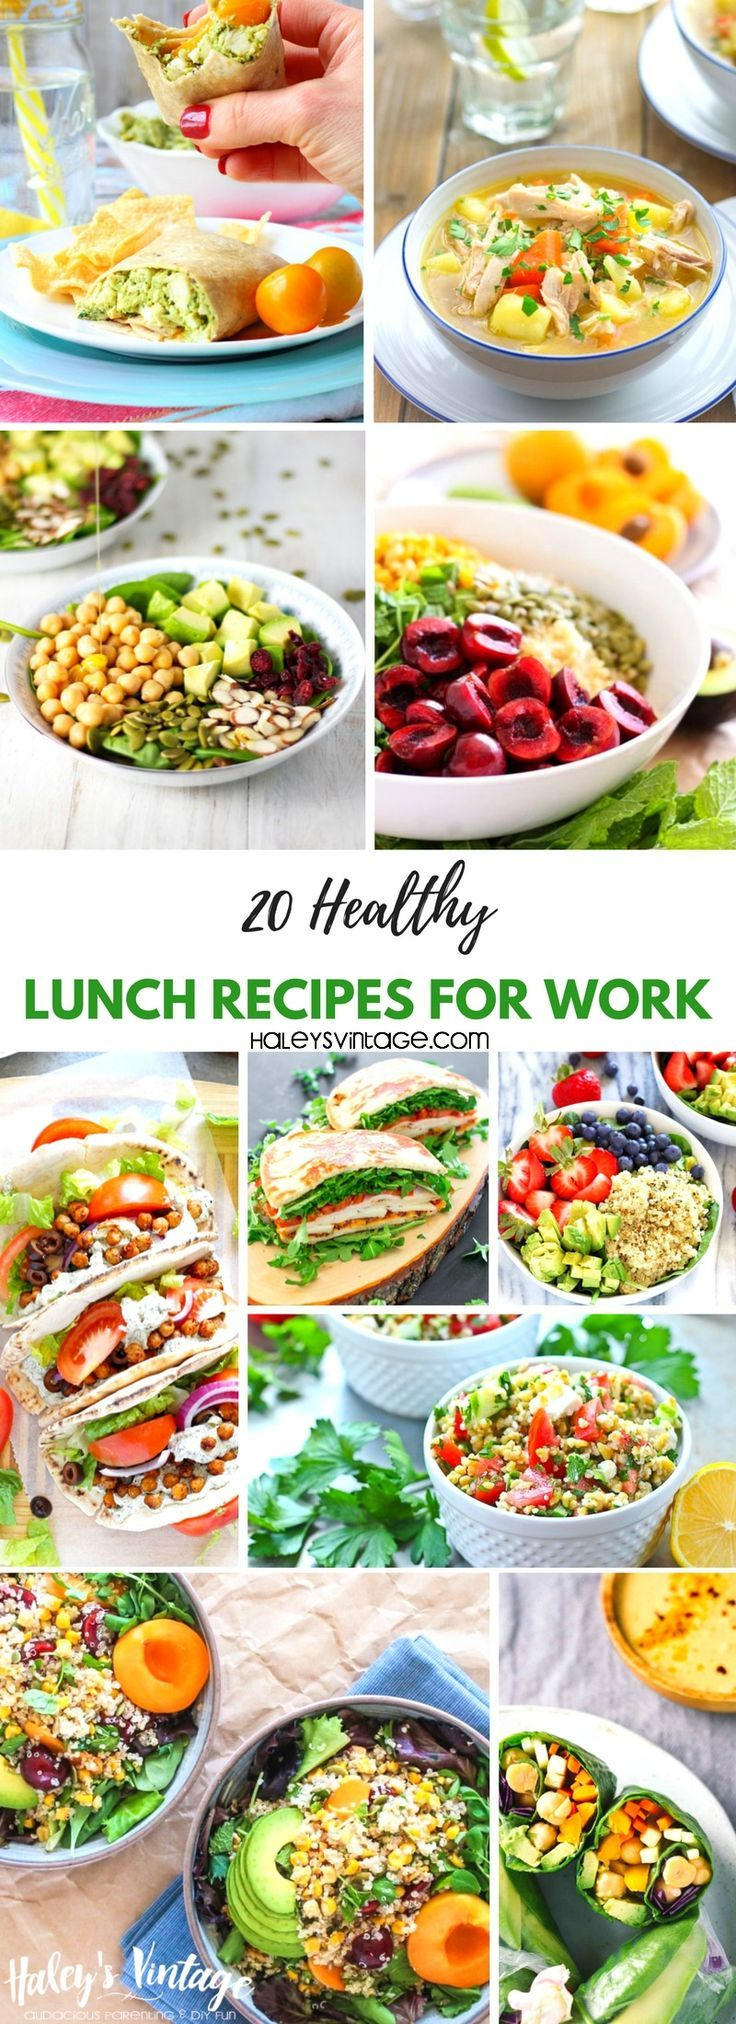 20 Healthy Lunch Recipes for Work That Are Not Boring! Are you tired of boring lunch recipes? I'm sharing twenty healthy lunch recipes for work that will bring excitement back to your lunch break!